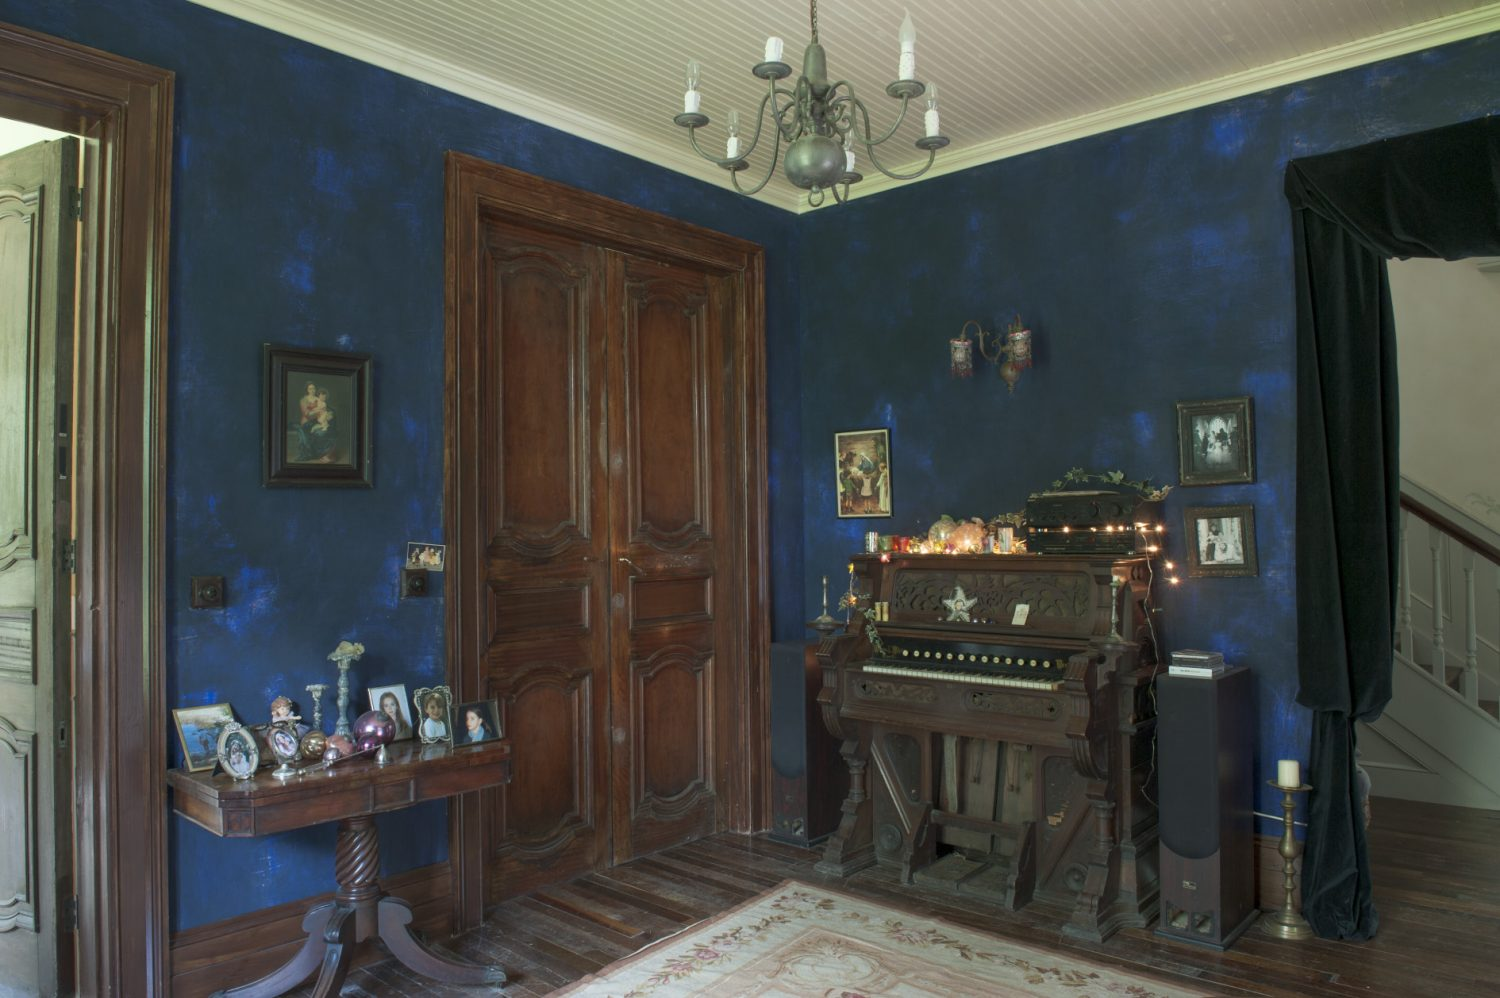 The entrance hall has been painted in layers of rich blues, ending in a midnight blue that seems to have taken on an almost velvety texture